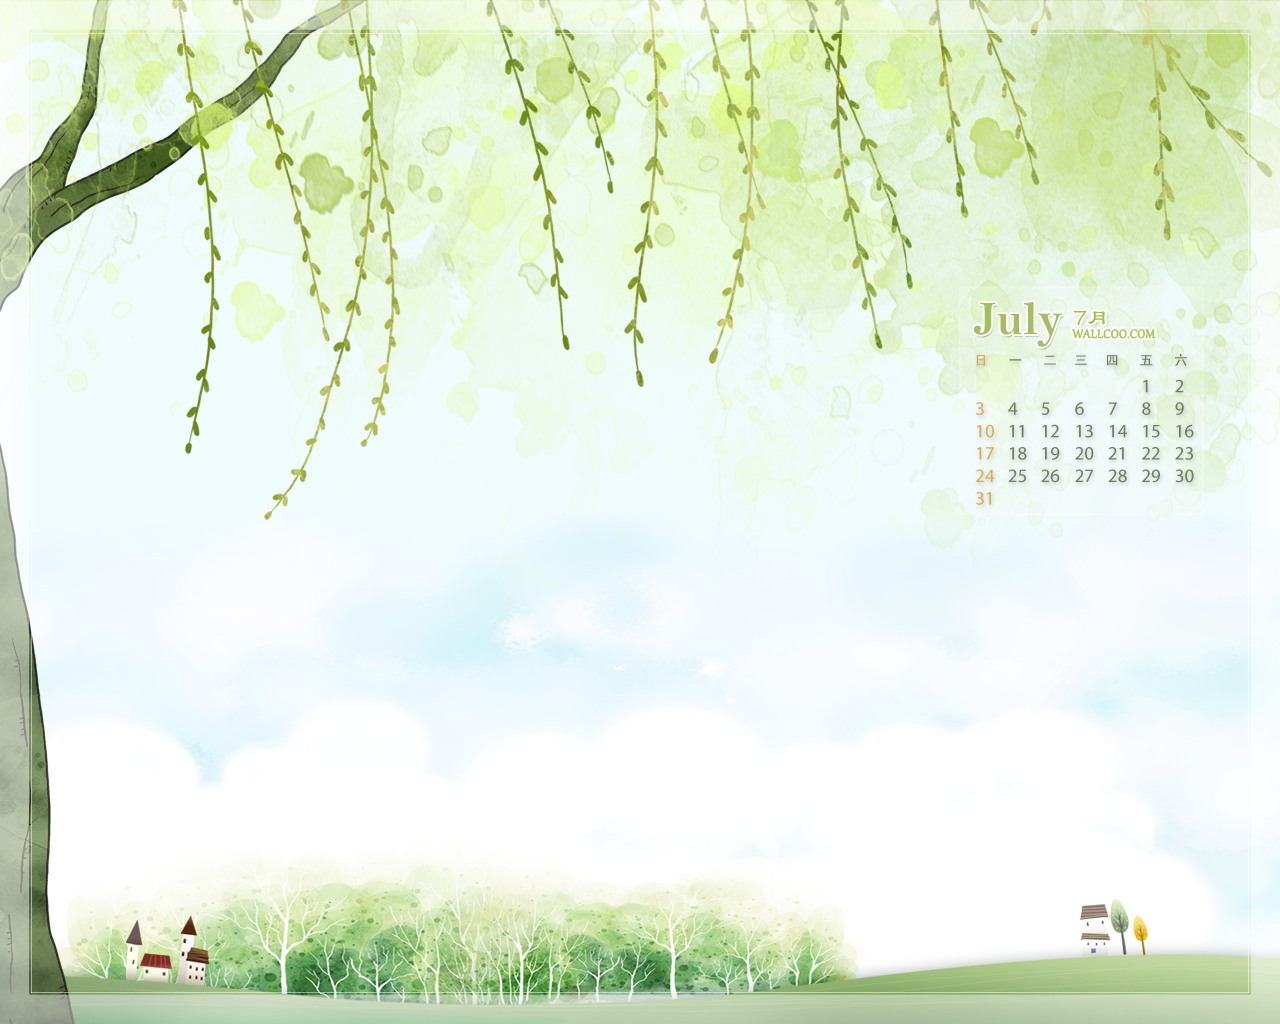 In January Calendar Wallpaper 29728